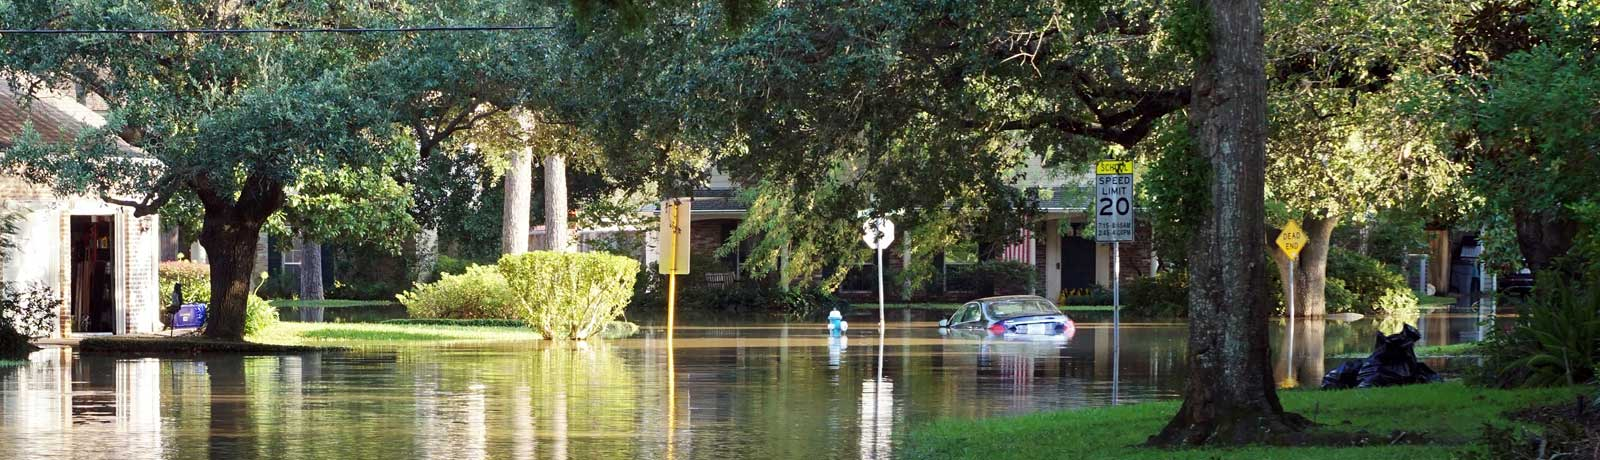 Bishop Claims Flood Services